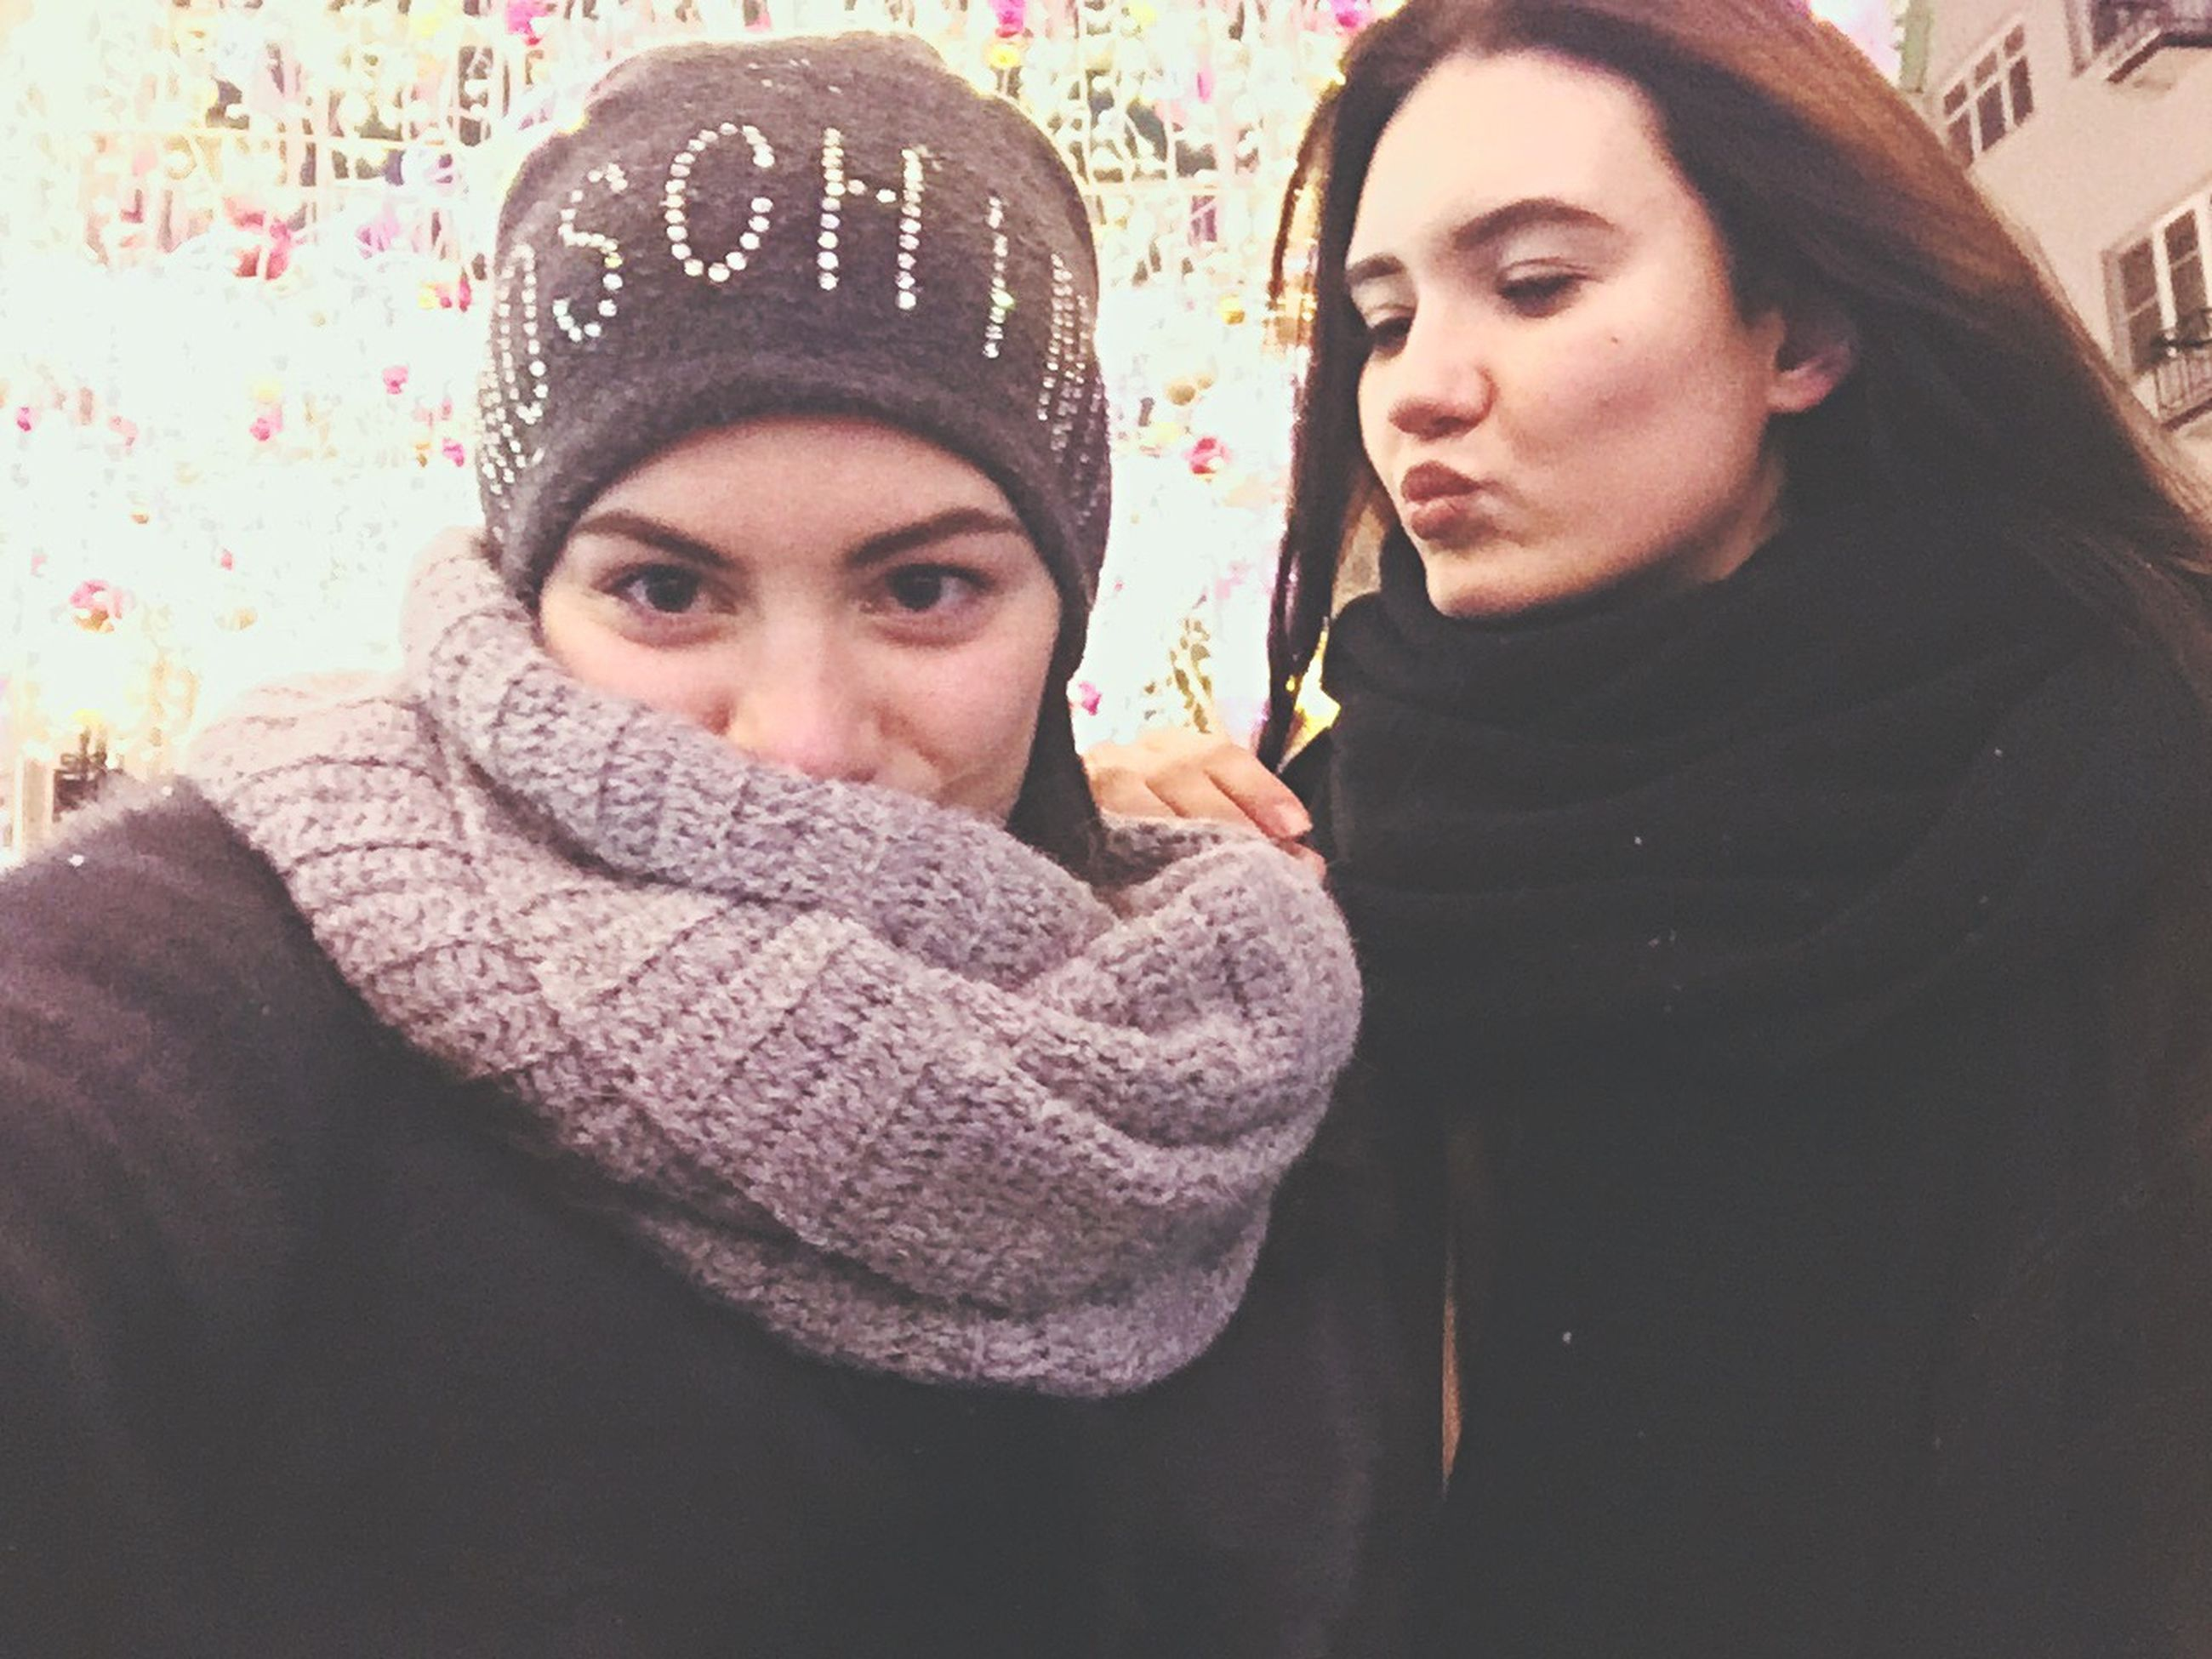 young adult, young women, two people, looking at camera, couple - relationship, warm clothing, love, women, adults only, headshot, knit hat, winter, people, hijab, adult, well-dressed, togetherness, close-up, day, beautiful woman, outdoors, place of worship